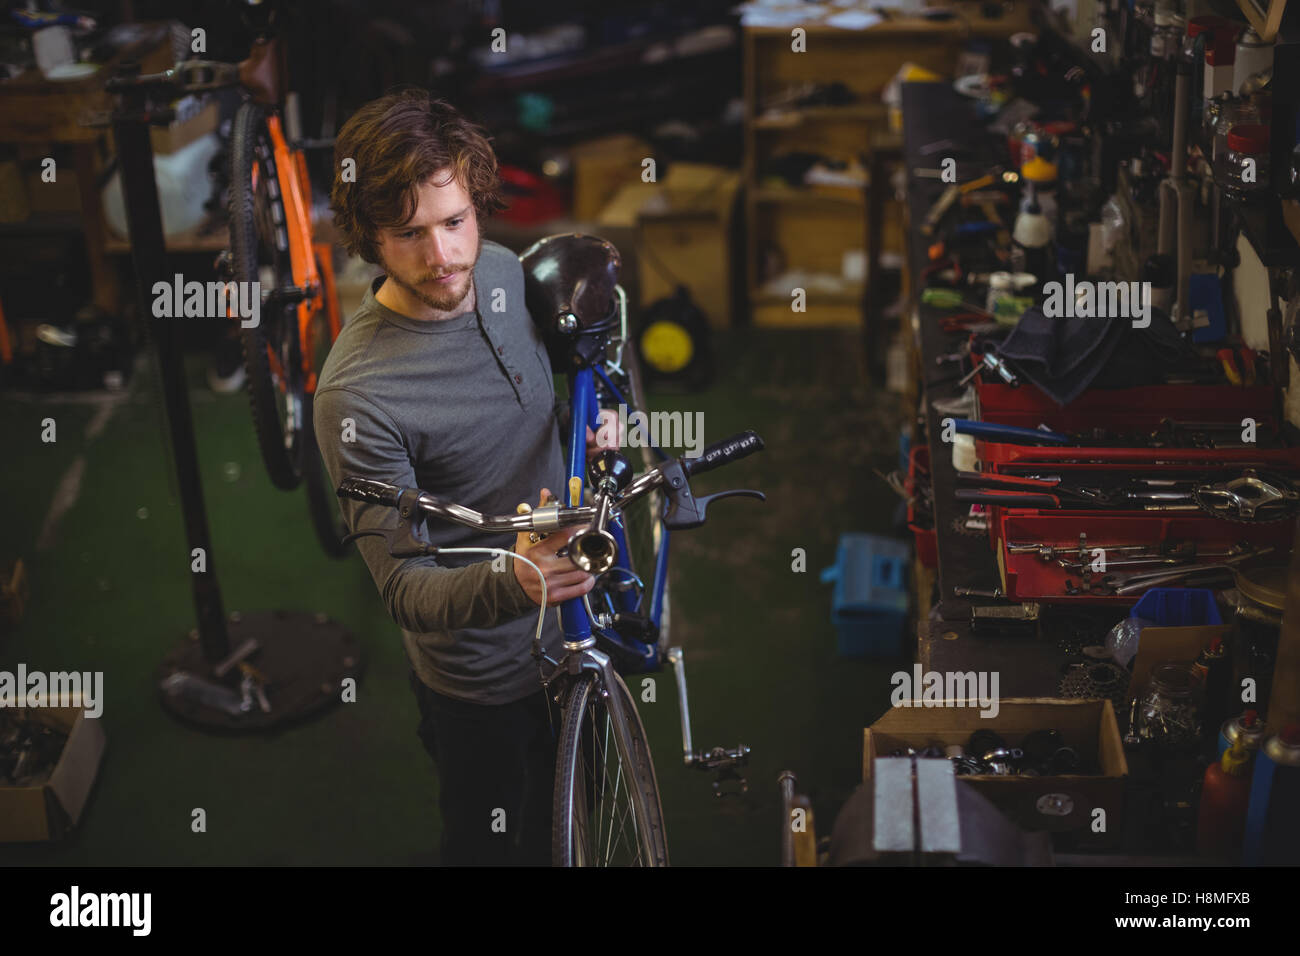 Mechanic carrying a bicycle - Stock Image